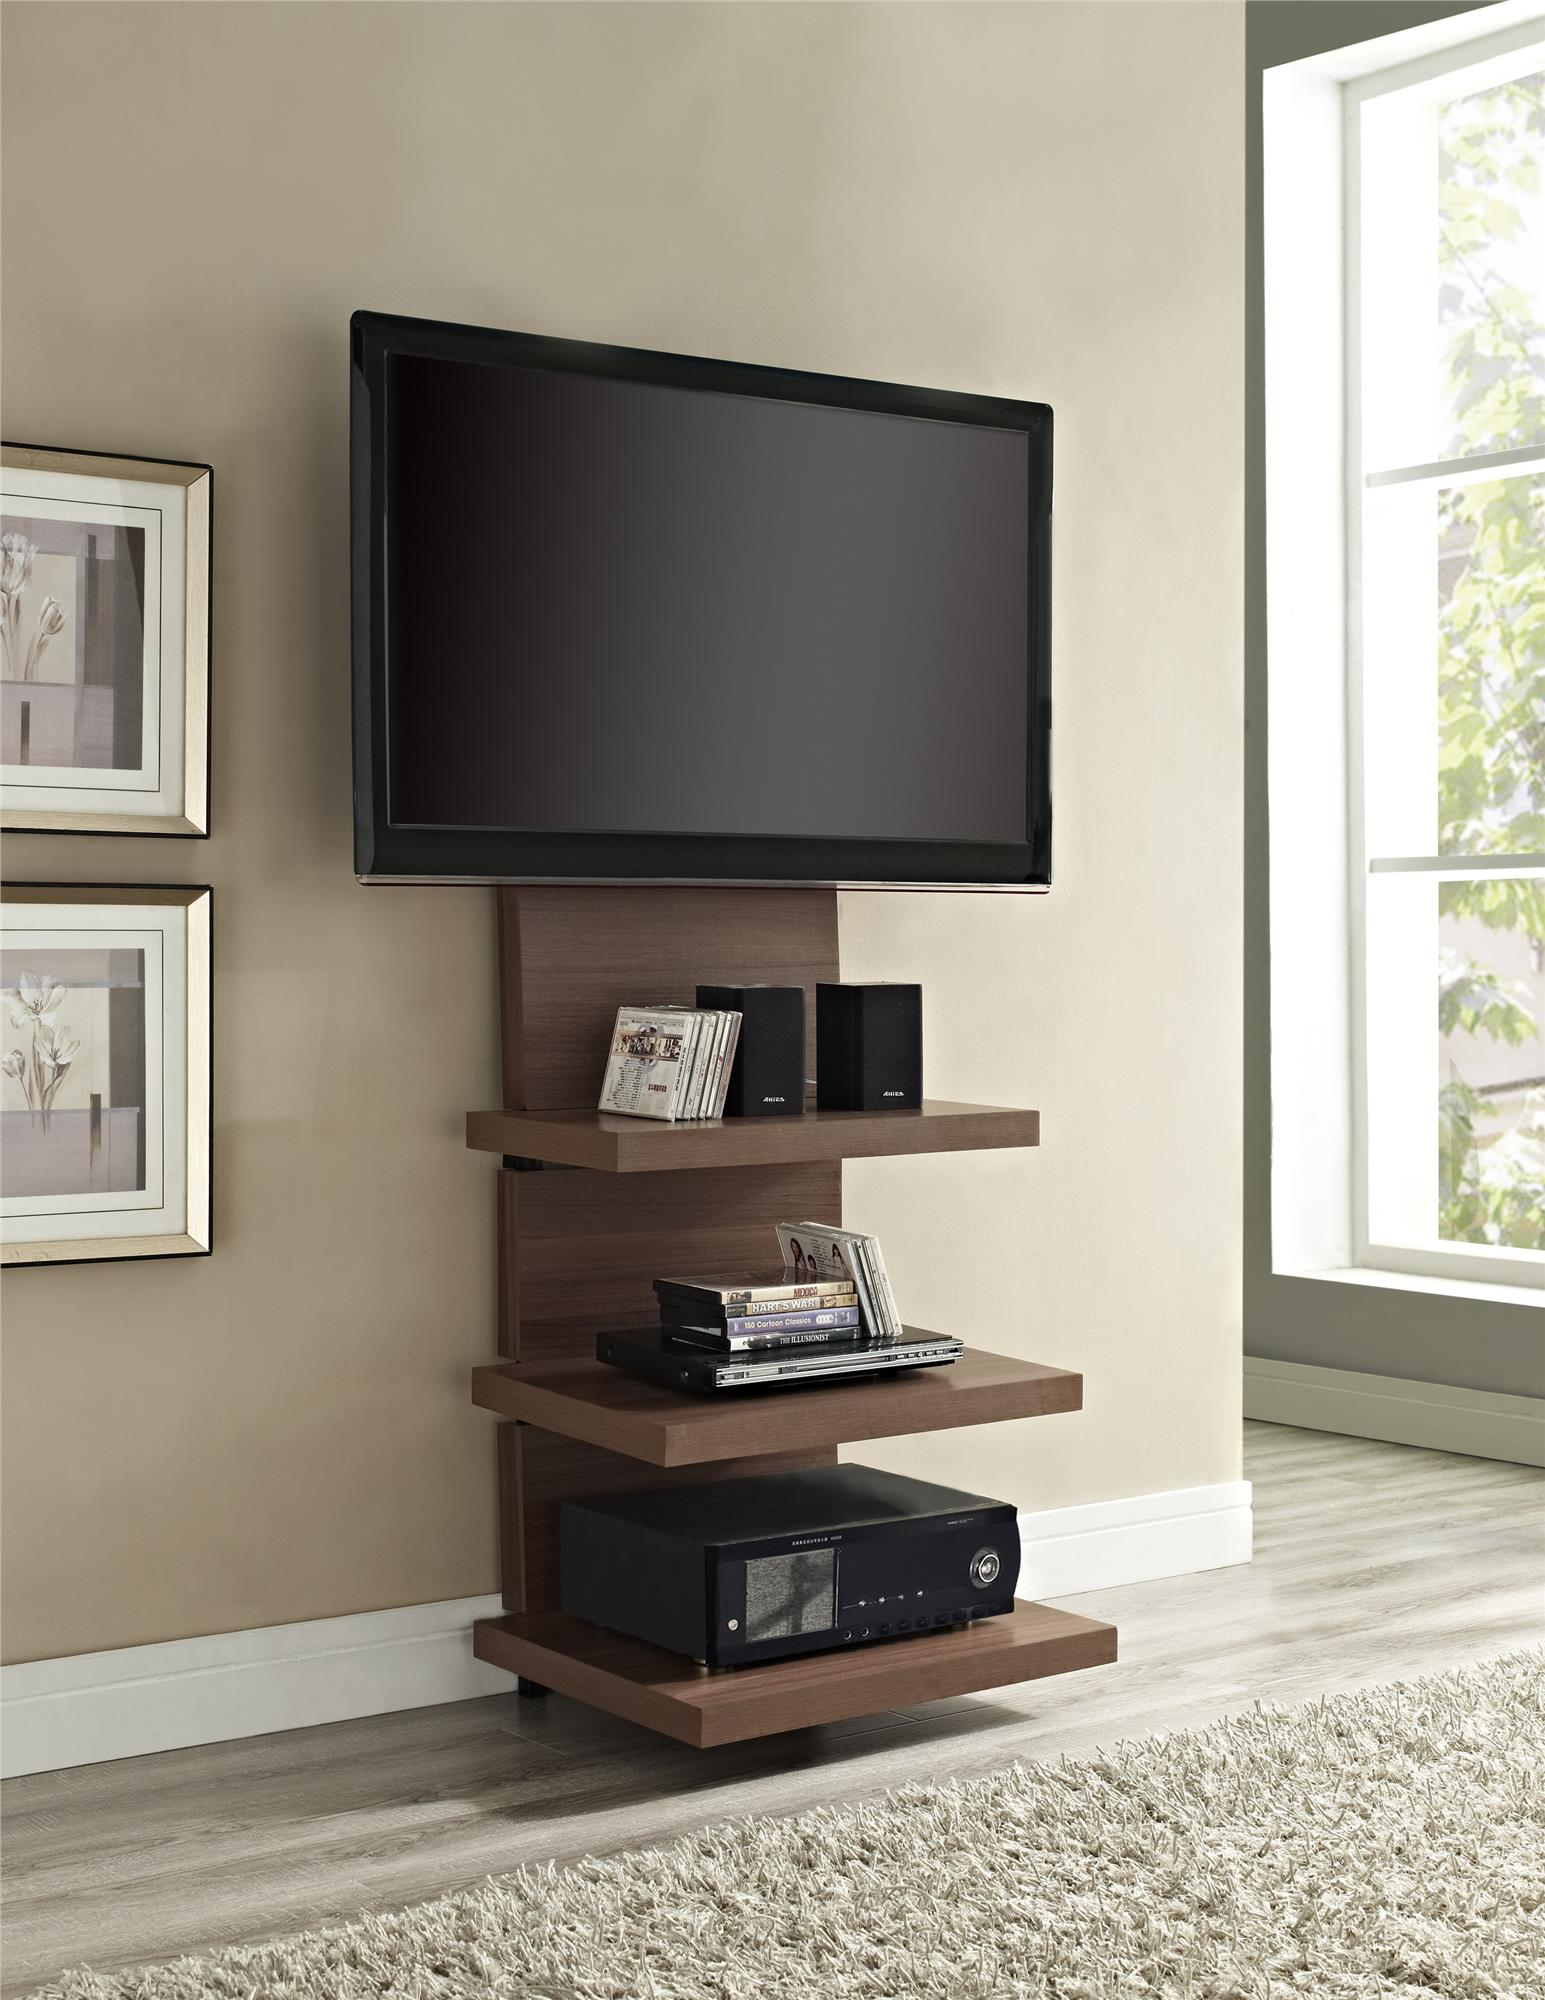 Tv stands recommendation homesfeed for In wall tv cabinet